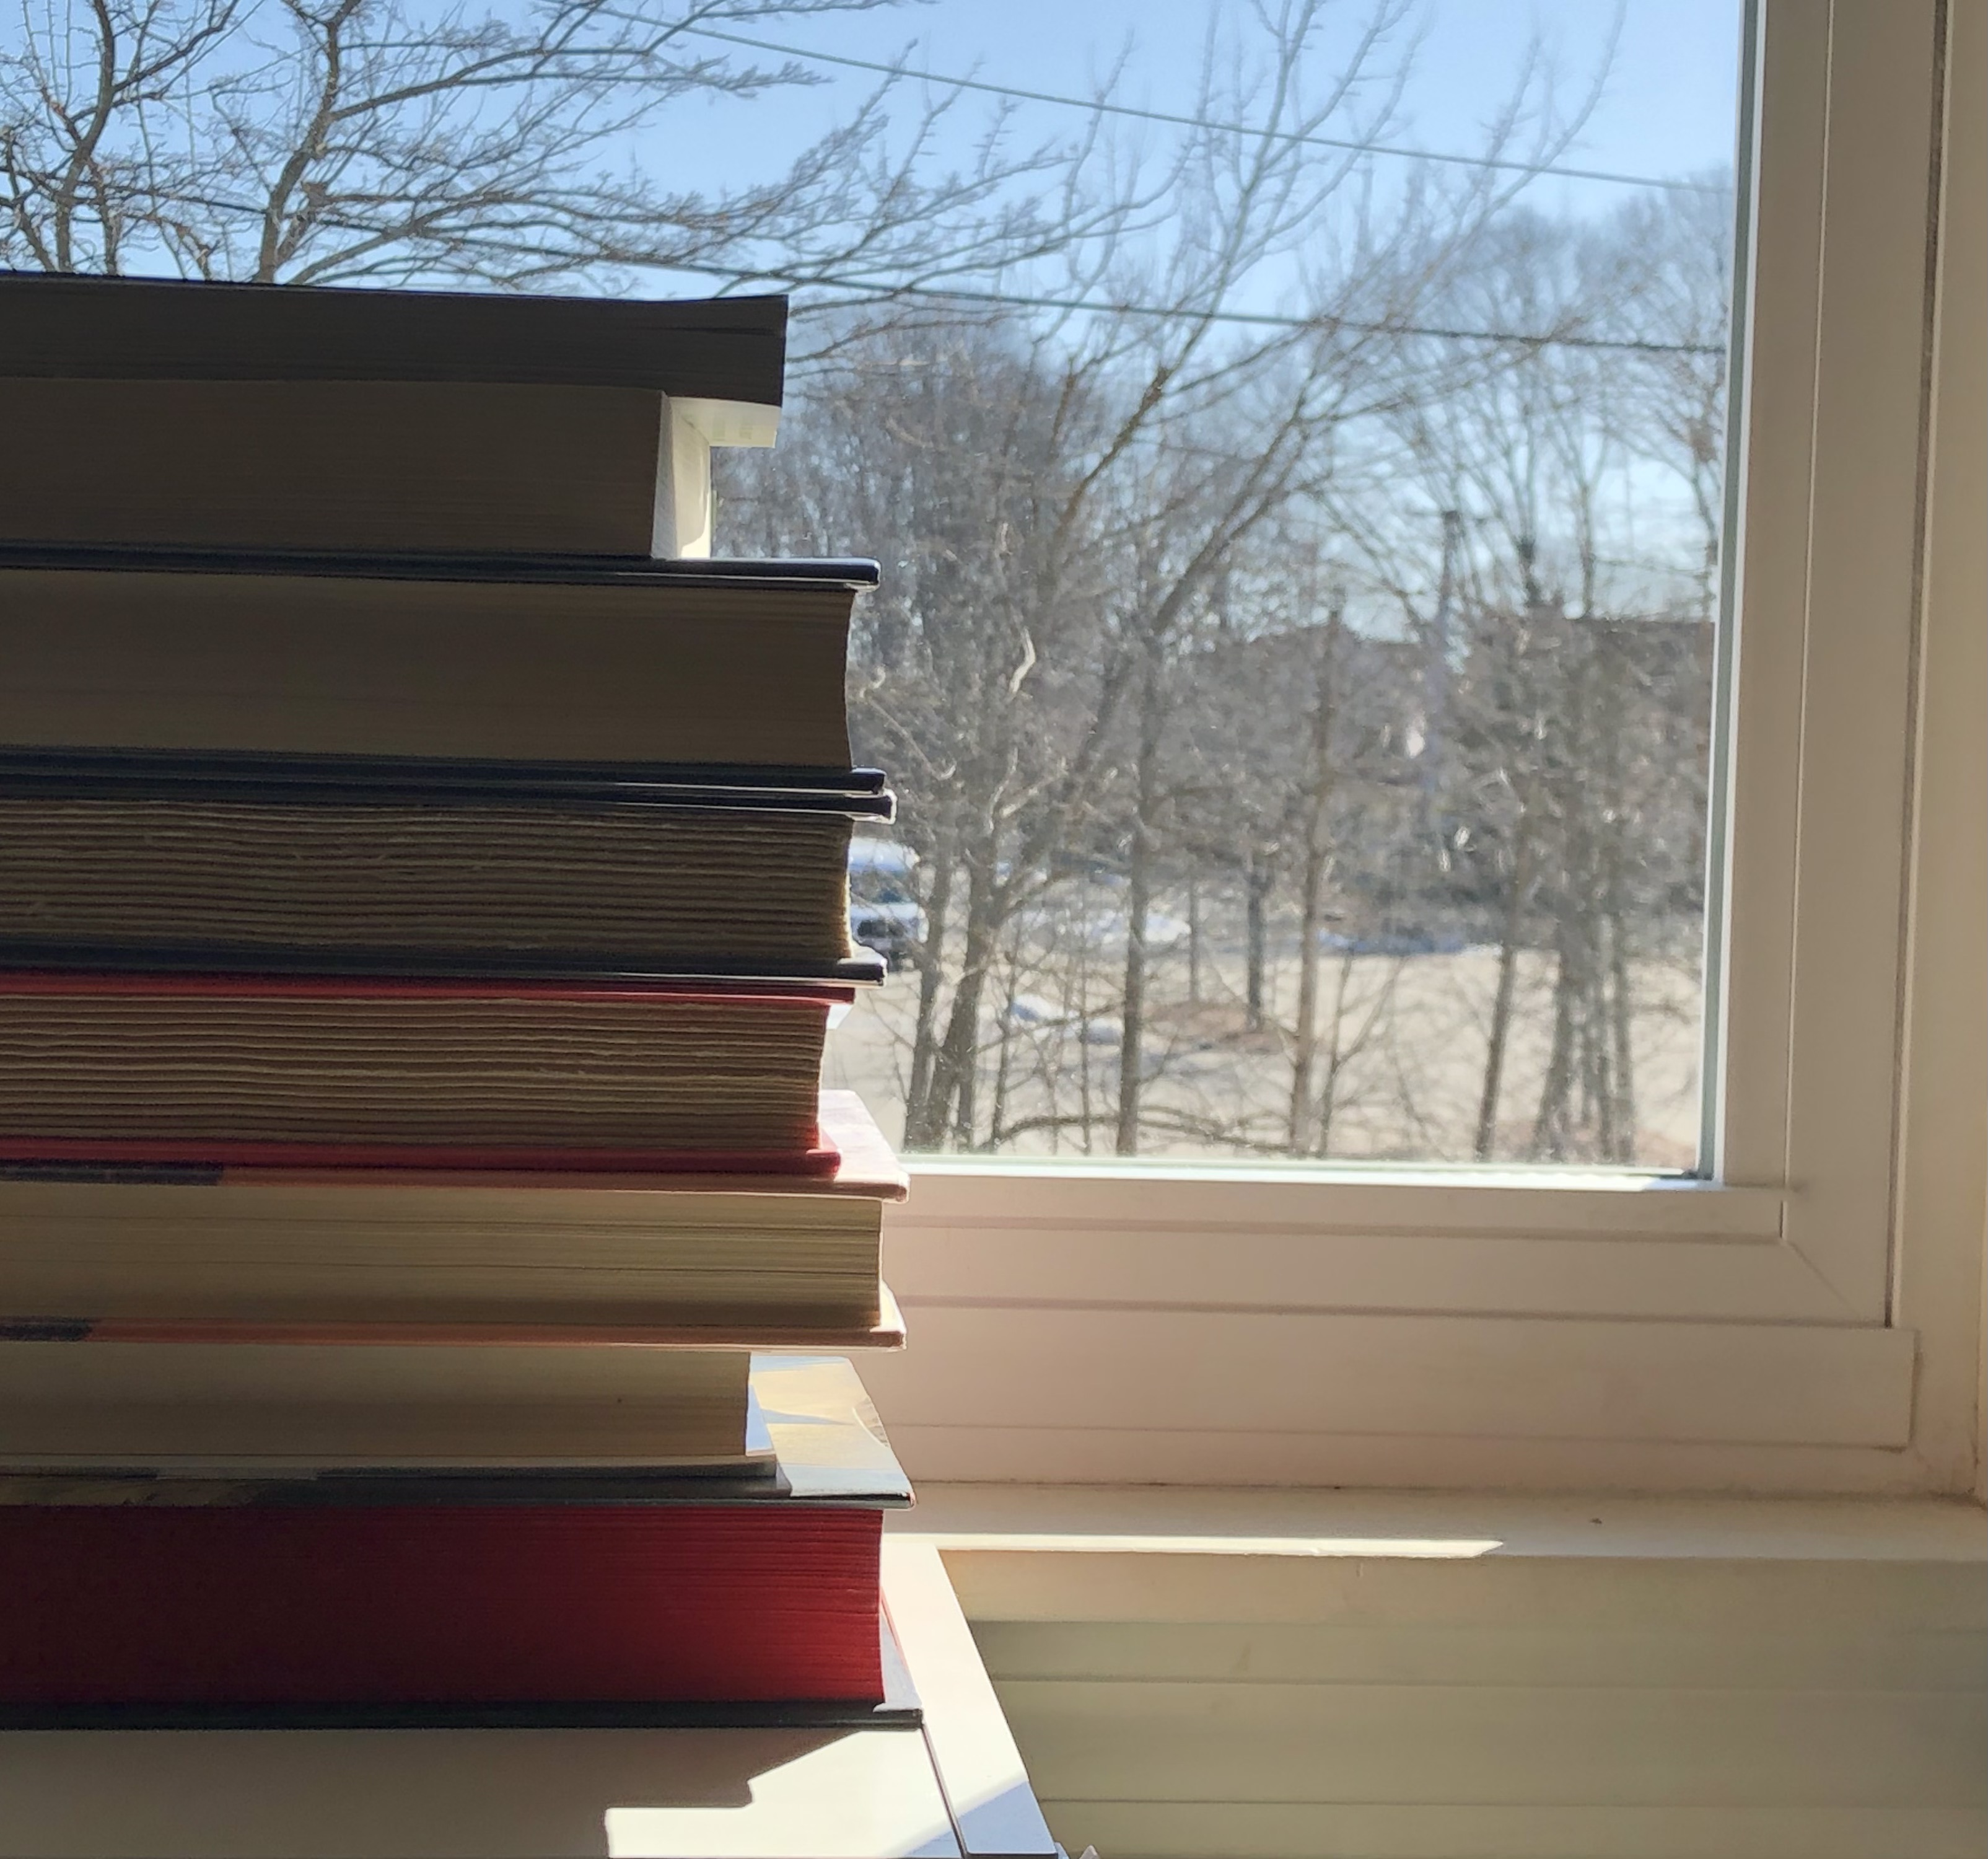 A stack of books in front of the author's window. Photo taken by the author.